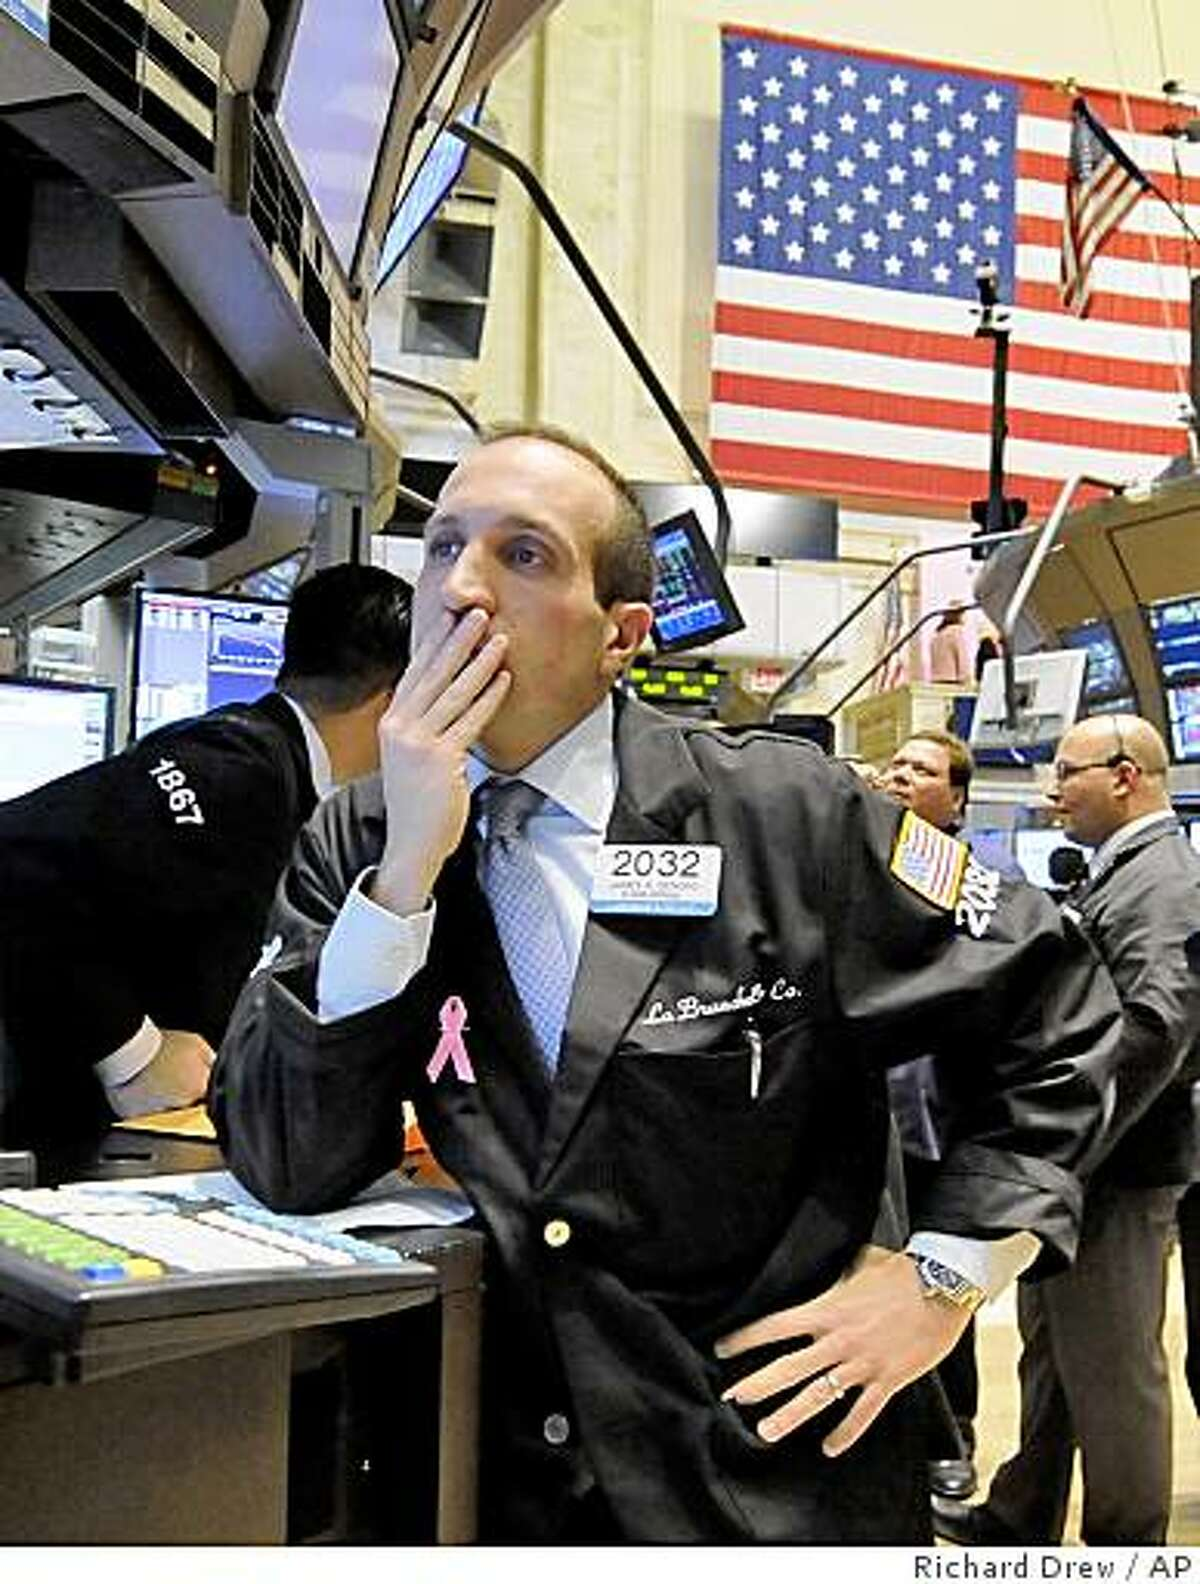 Specialist James Denaro, left, works at his post on the floor of the New York Stock Exchange after the closing bell, Friday, Oct. 10, 2008. Wall Street capped its worst week ever with a wild session Friday that saw the Dow Jones industrials rocket within a 1,000 point range before closing with a relatively mild loss and the Nasdaq composite index actually end with a modest advance. (AP Photo/Richard Drew)